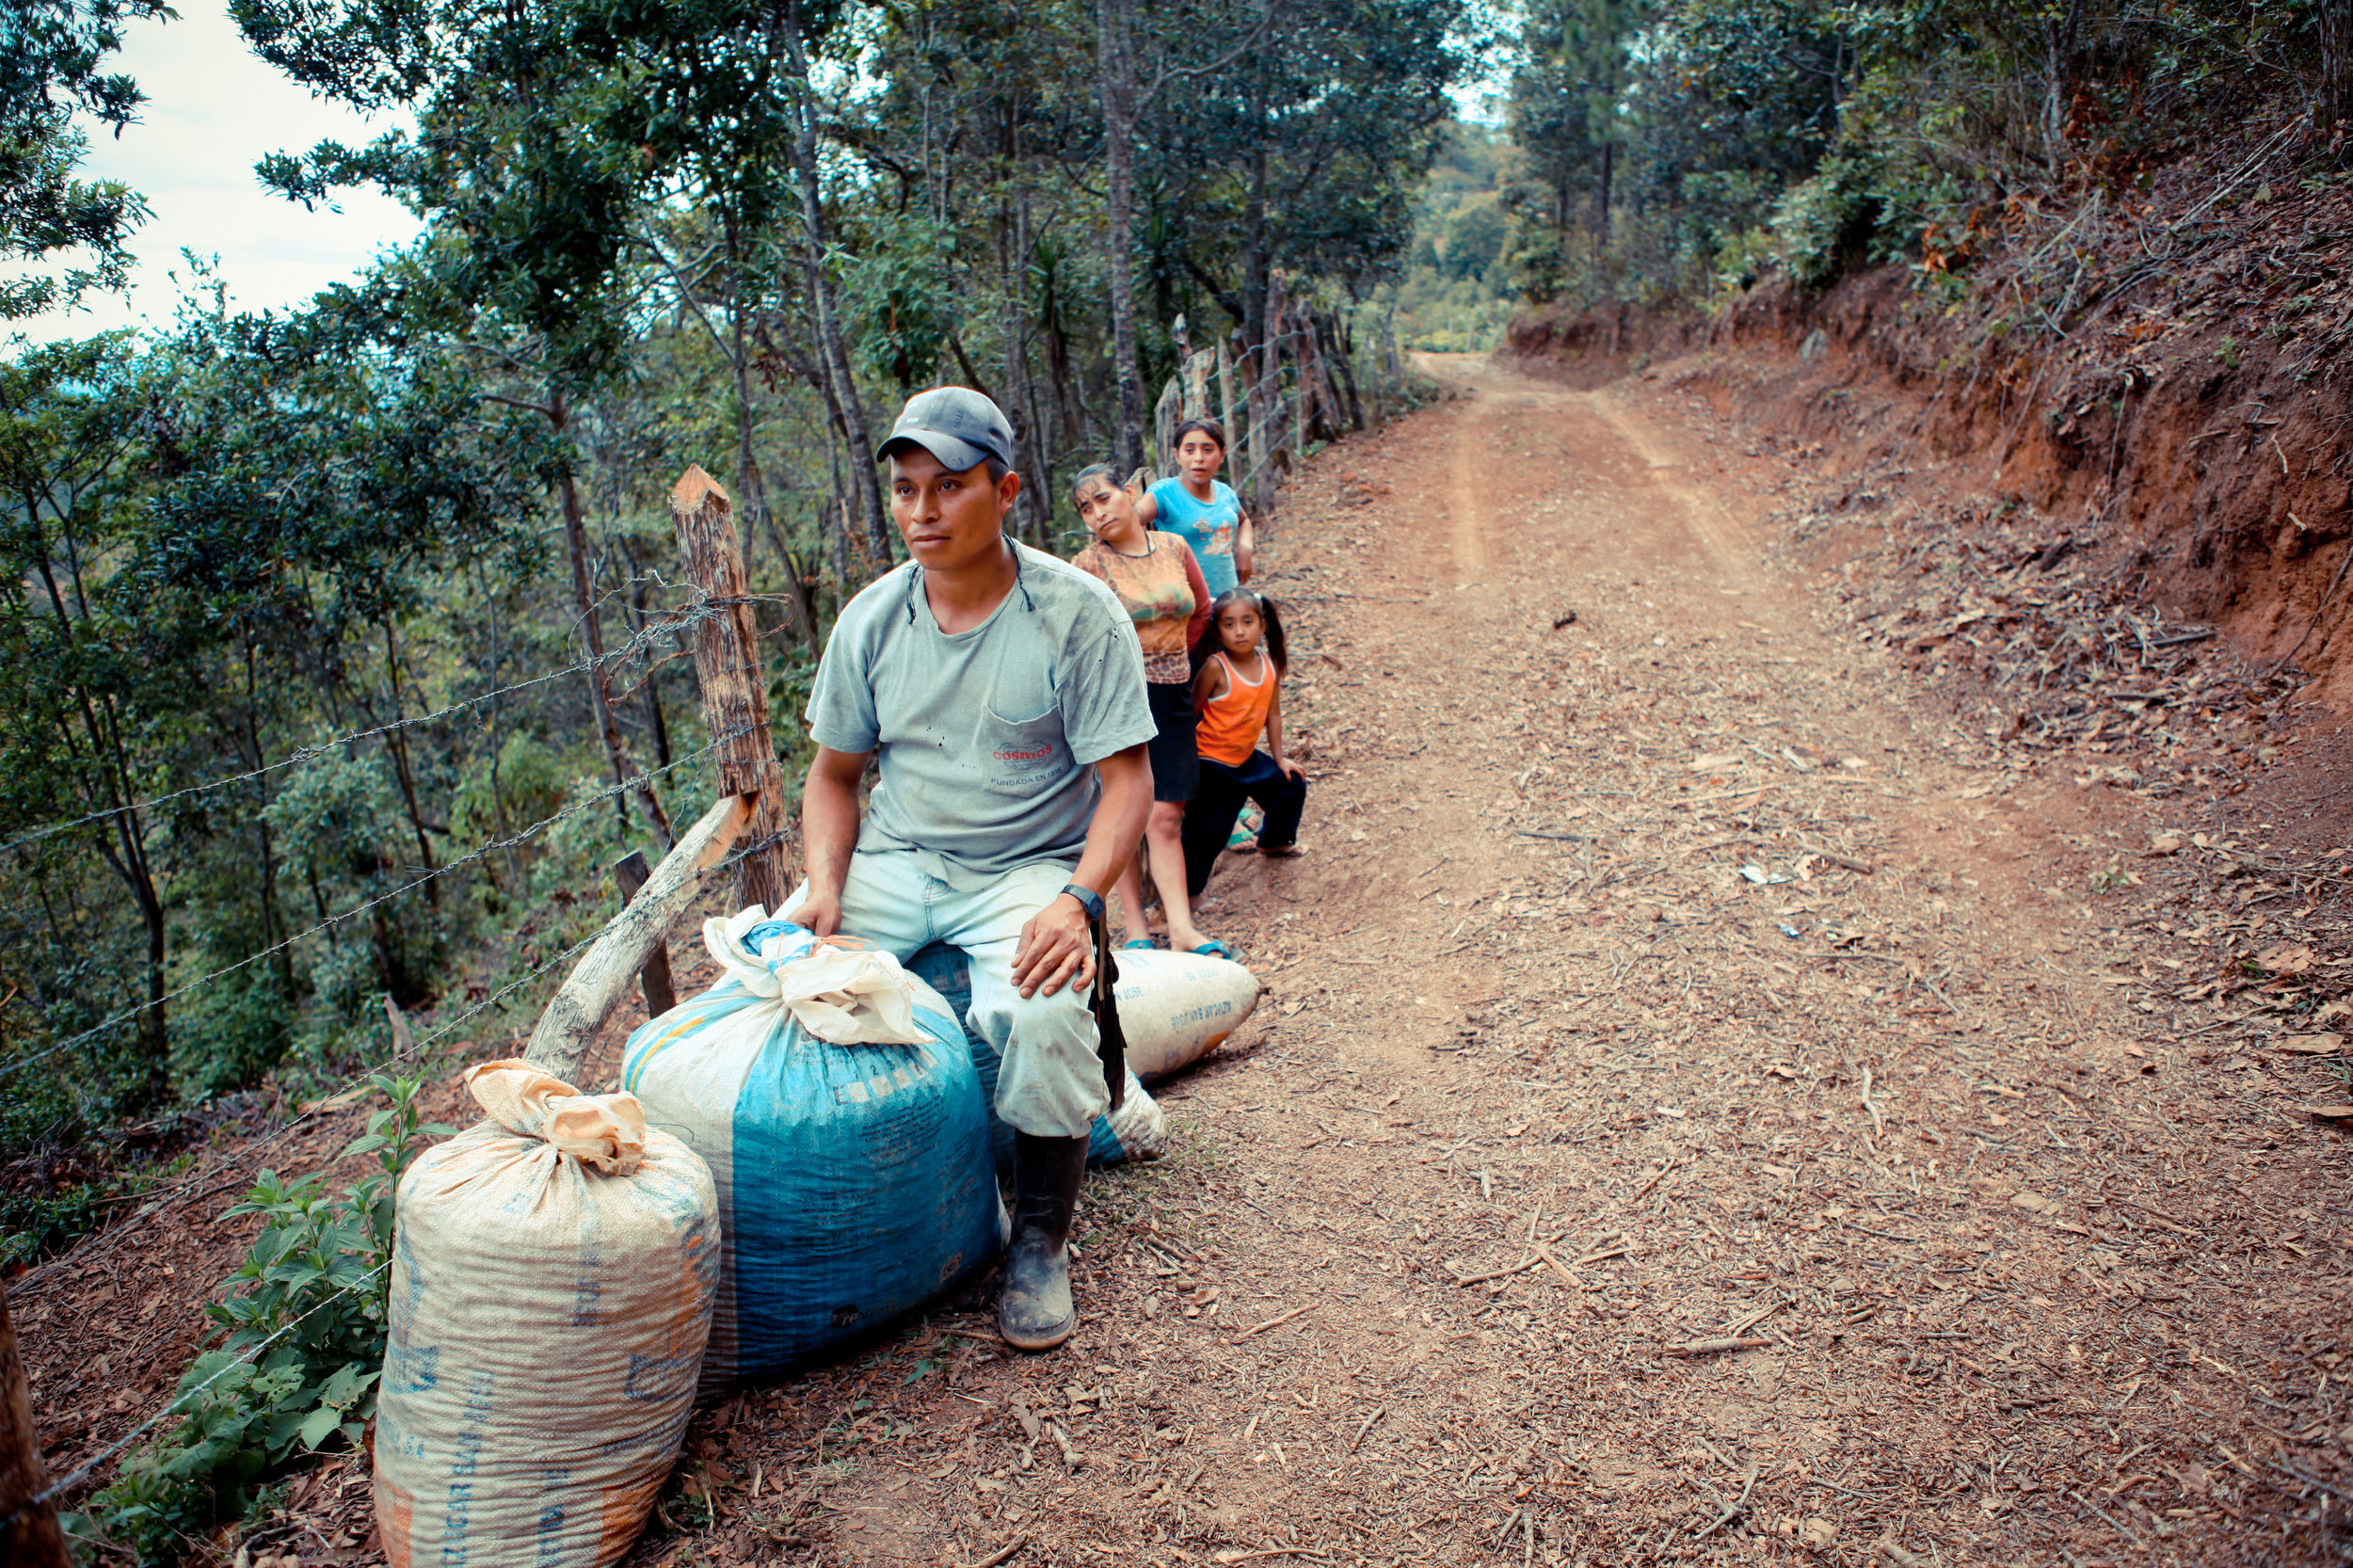 Catracha farmers with part of their yearly harvest. Many farmers in the group are very small producers, like this woman.